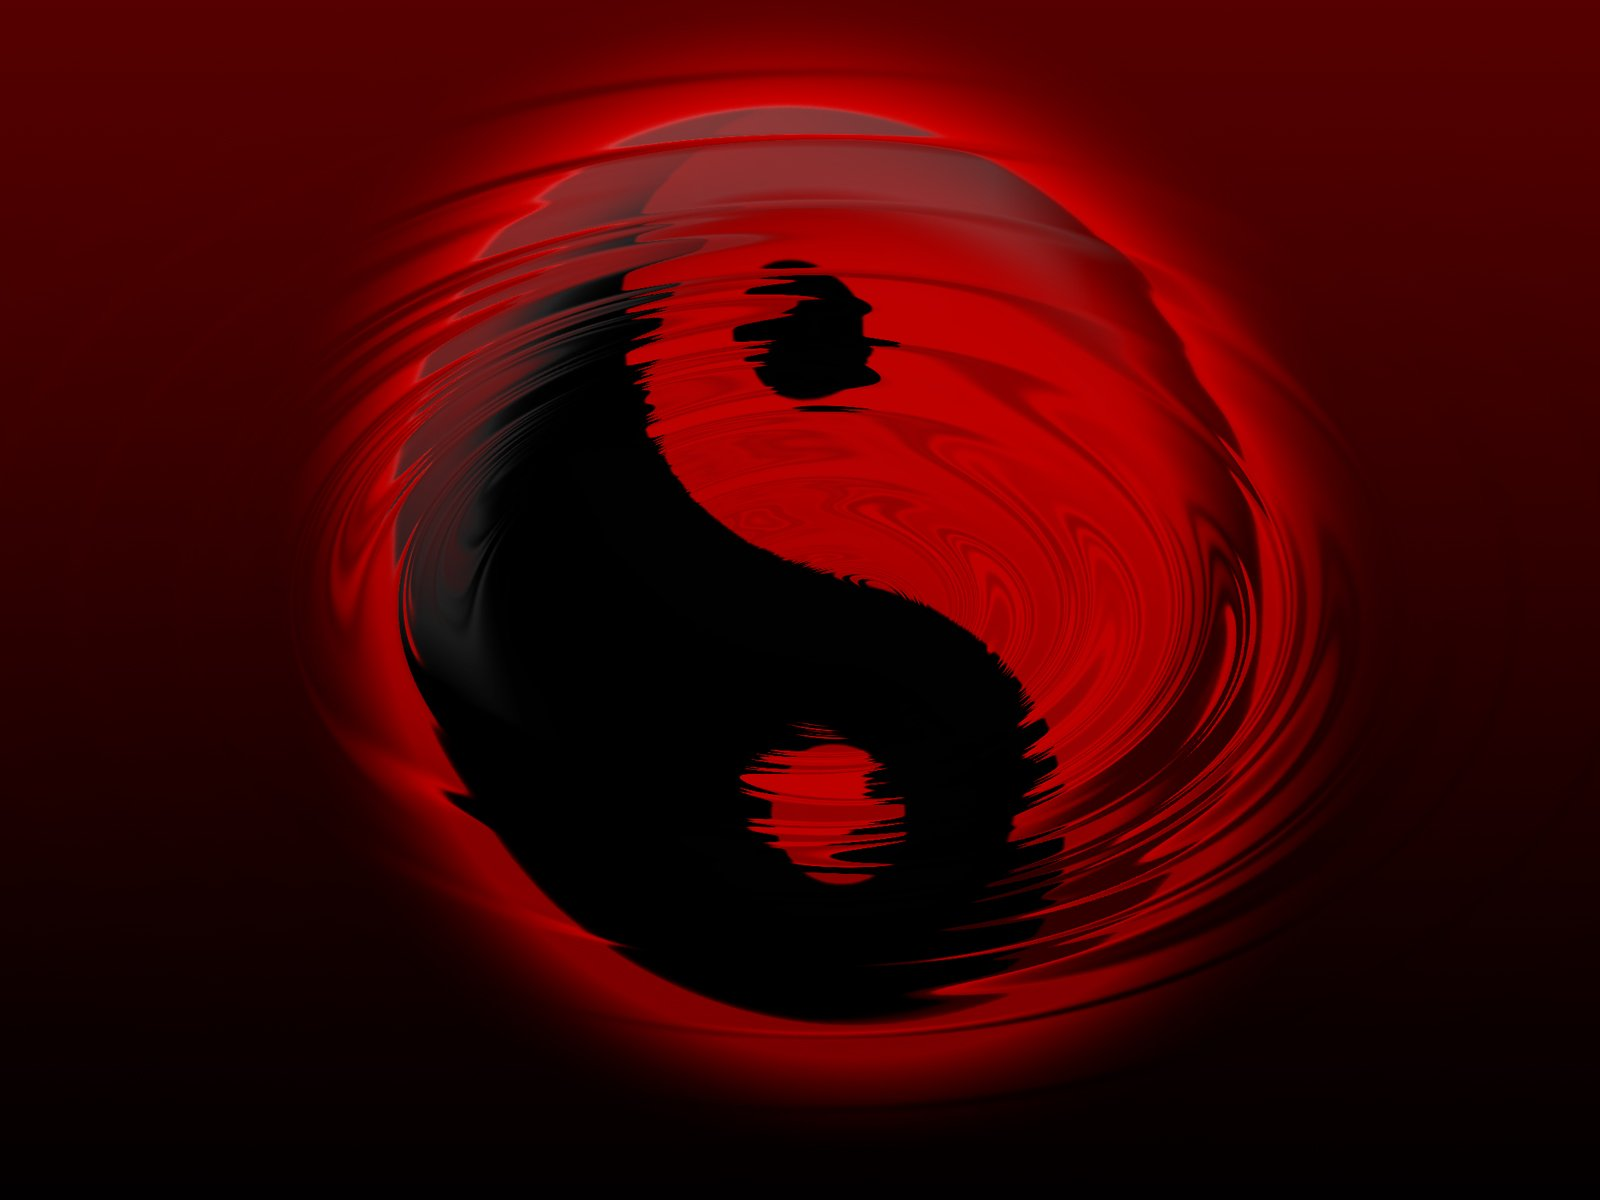 Black and Red Yin Yang 1600x1200